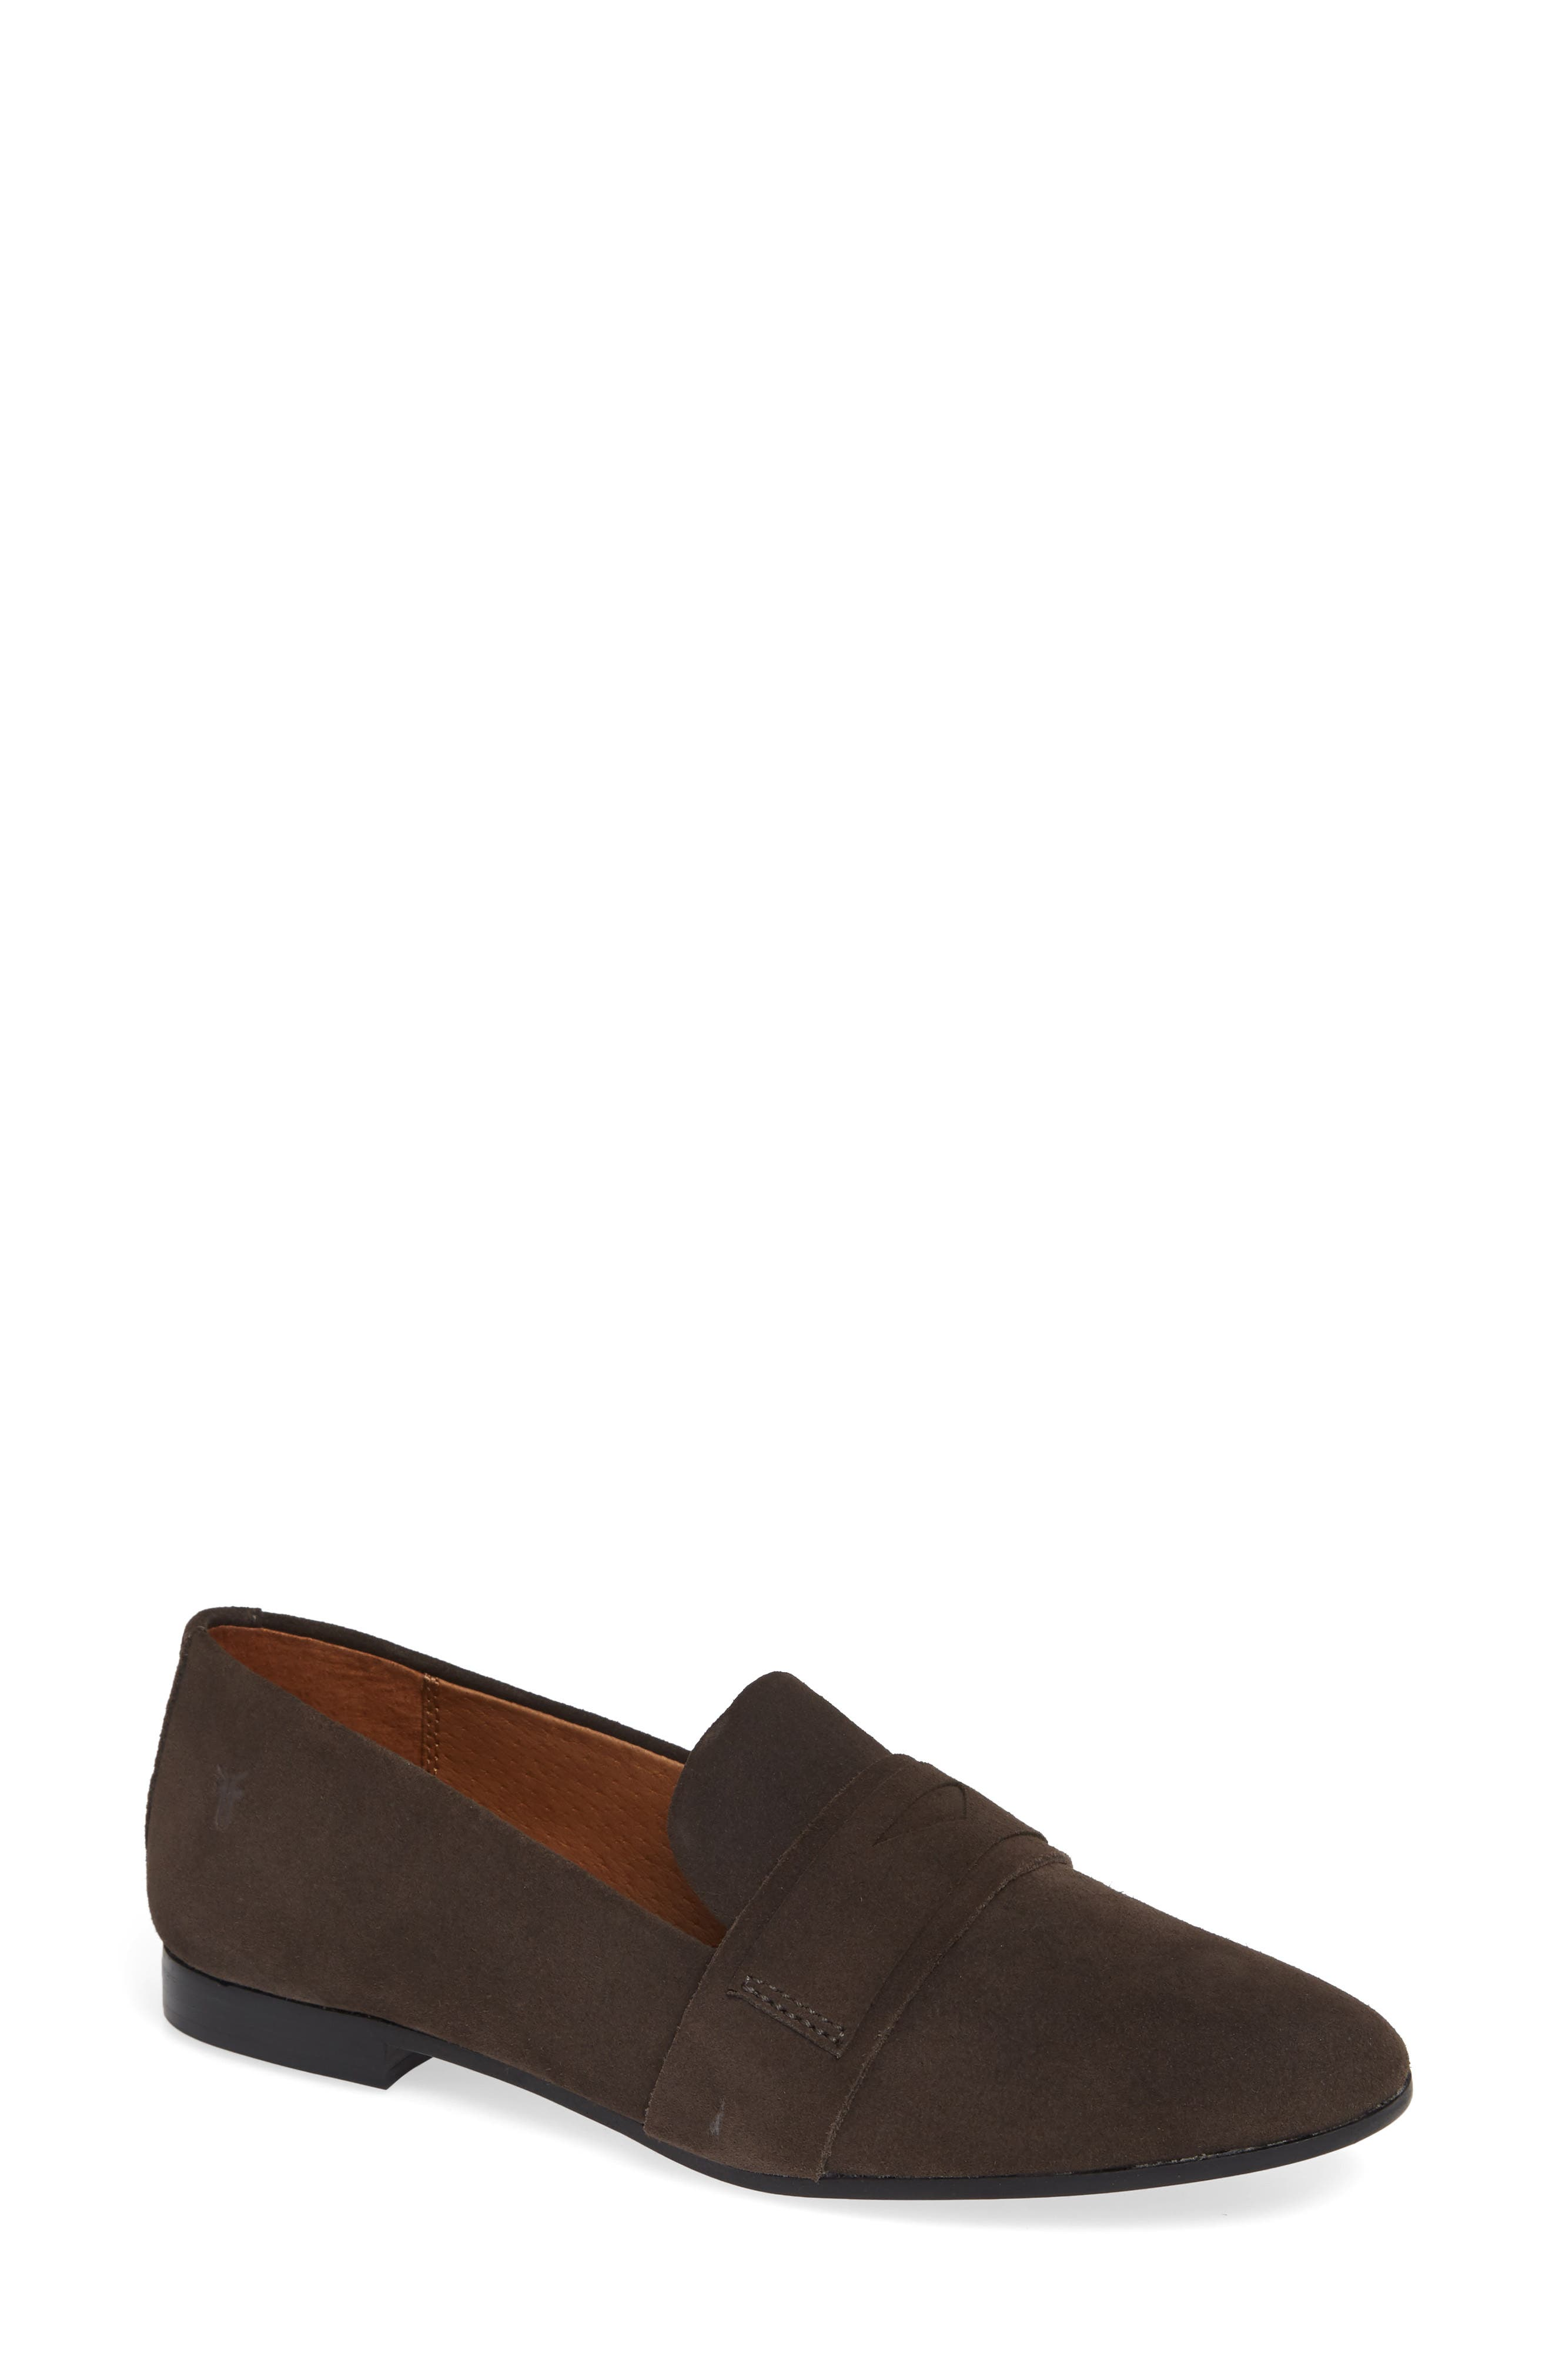 Terri Penny Loafer,                             Main thumbnail 1, color,                             CHARCOAL SUEDE